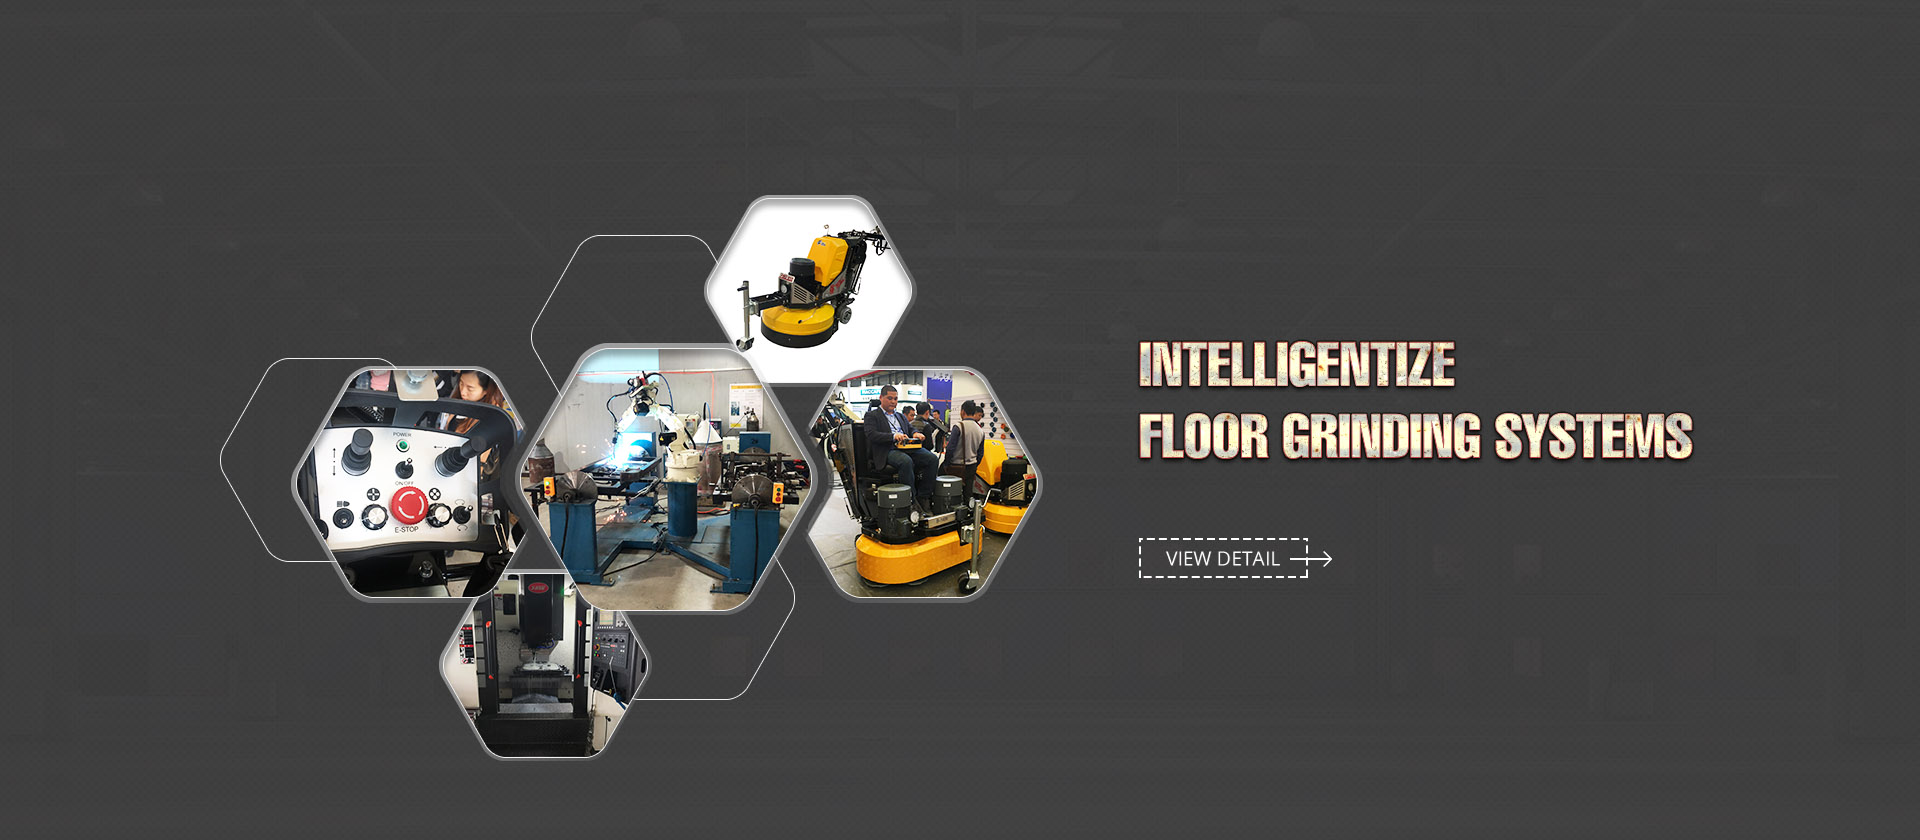 intelligentize floor grinding